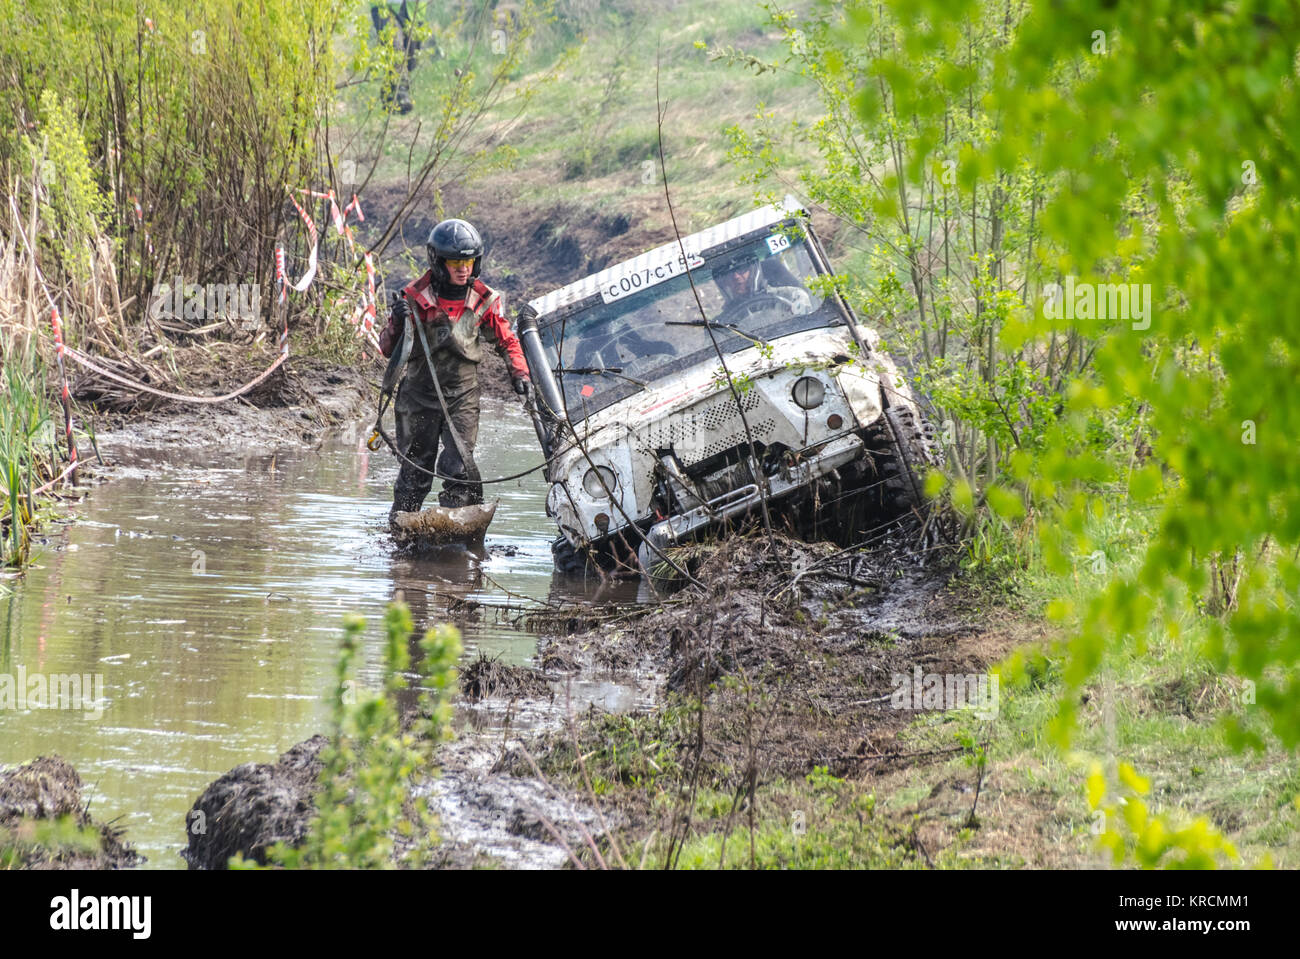 SALOVKA, RUSSIA - MAY 5, 2017: Vehicle mud race at the annual competition 'Trofi rubezh 2017' - Stock Image